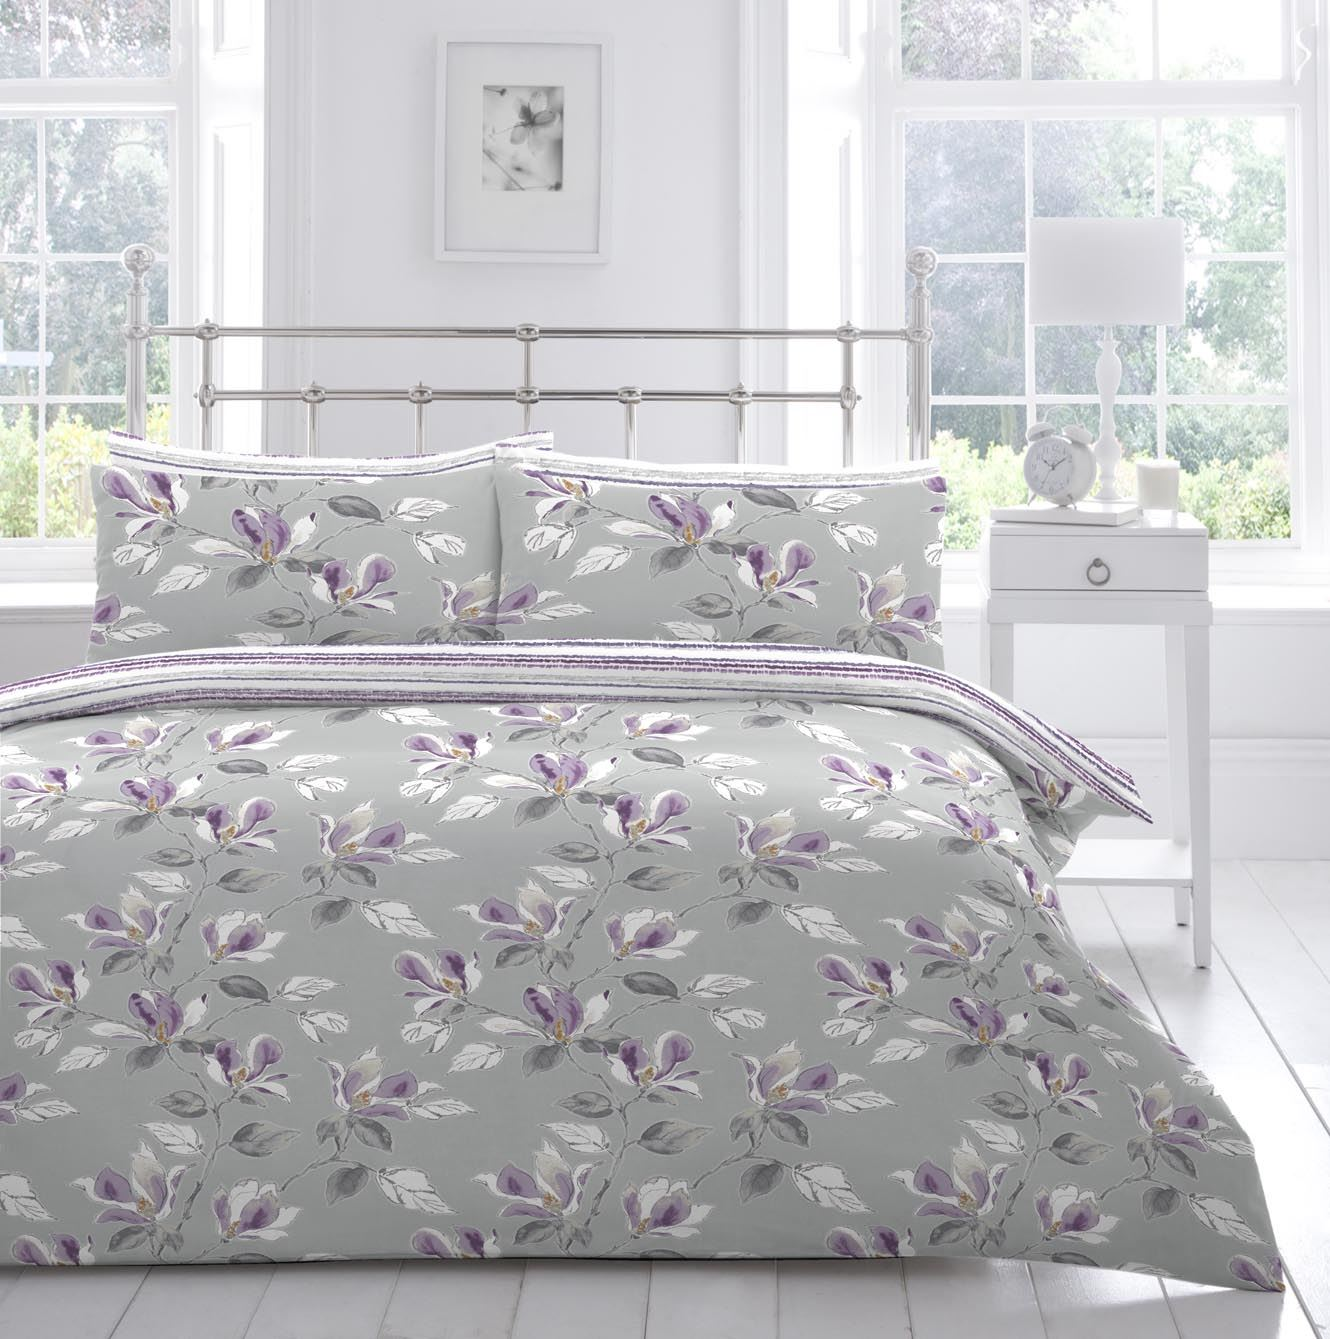 appletree® sabille floral duvet cover  cotton quilt set grey  - appletree® sabille floral duvet cover  cotton quilt set grey